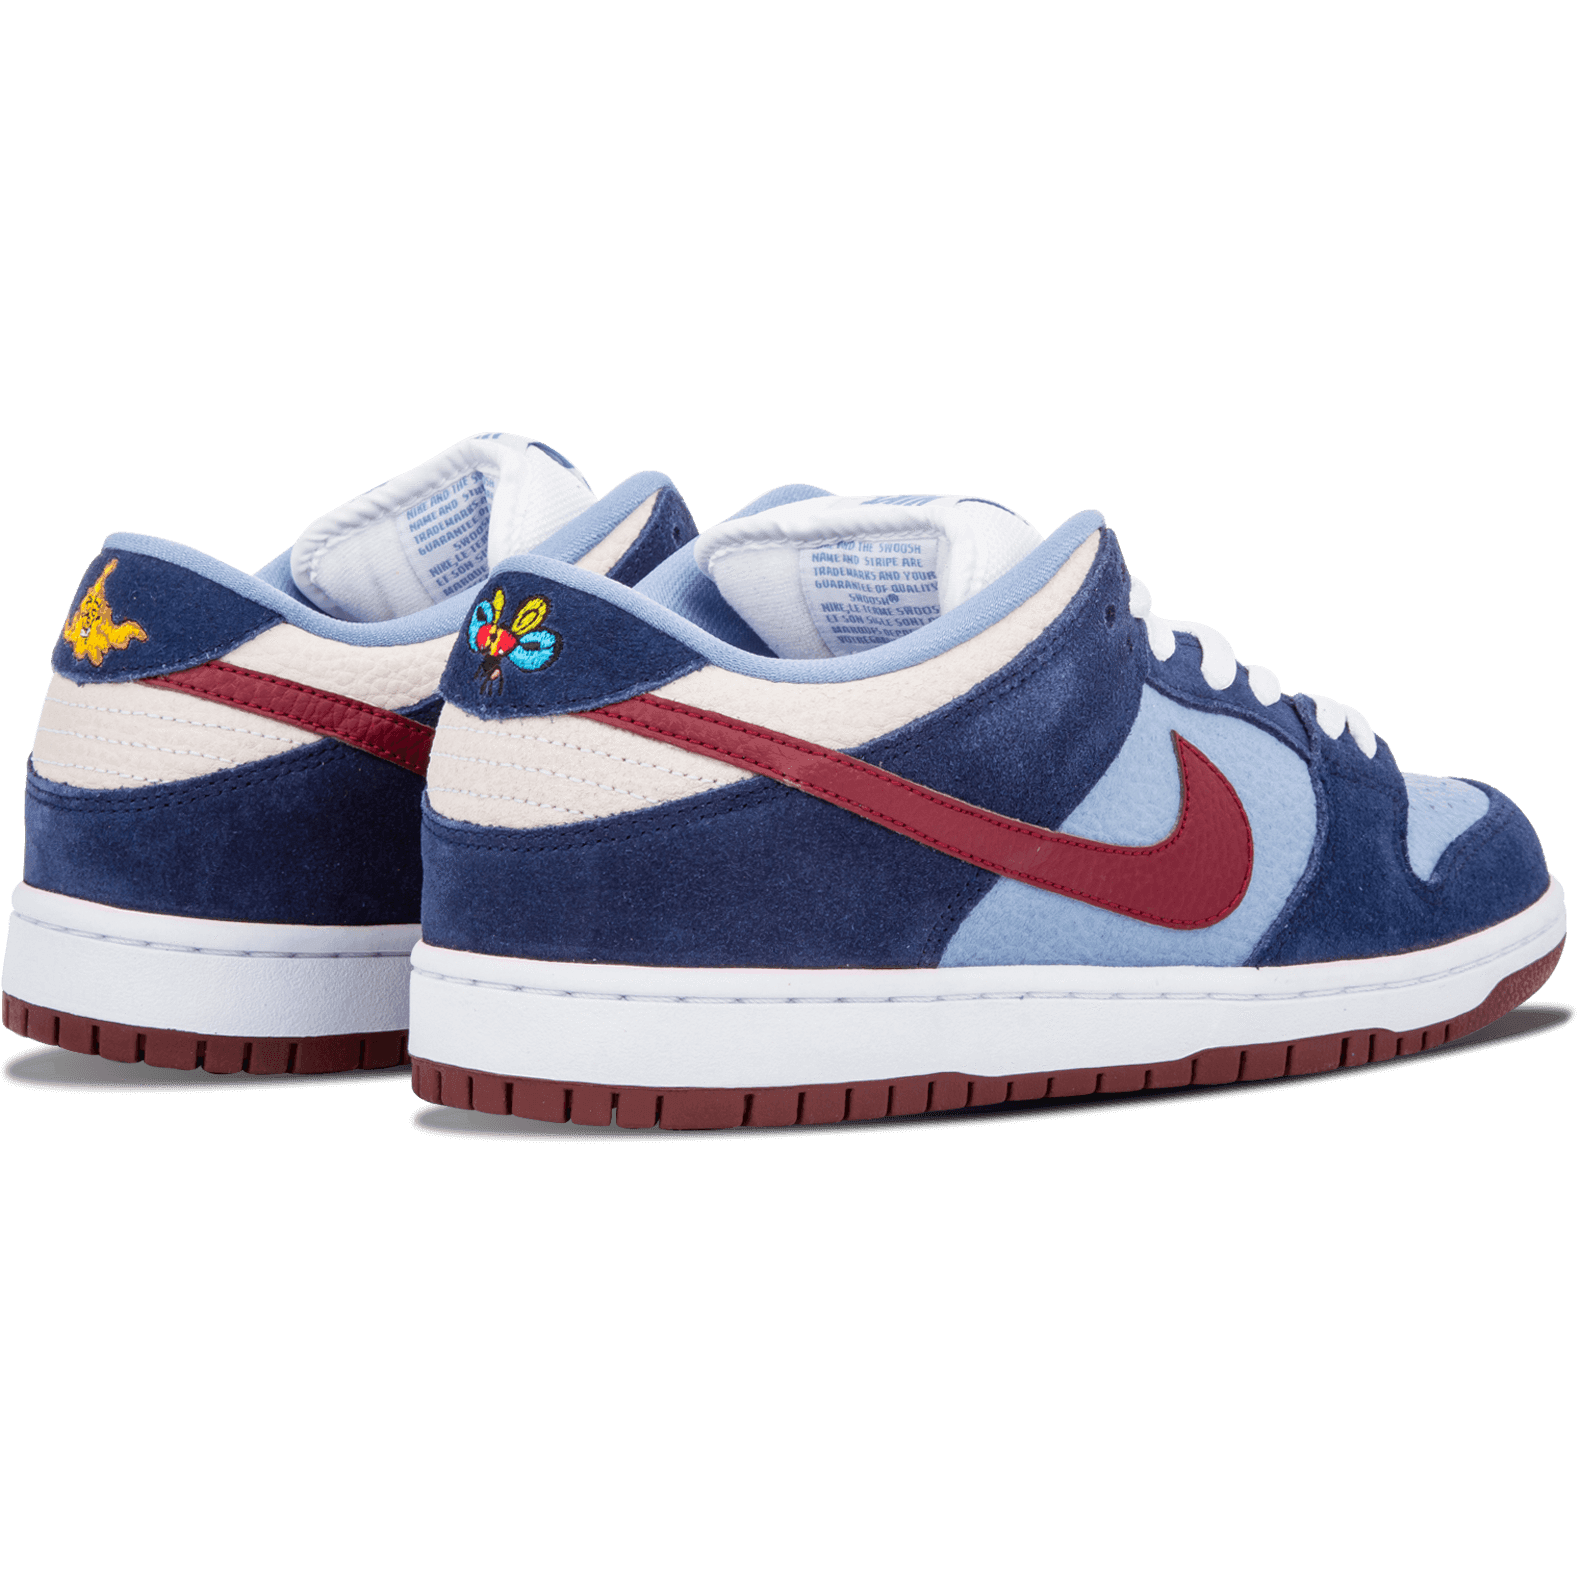 Nike SB Dunk Low - FTC Finally